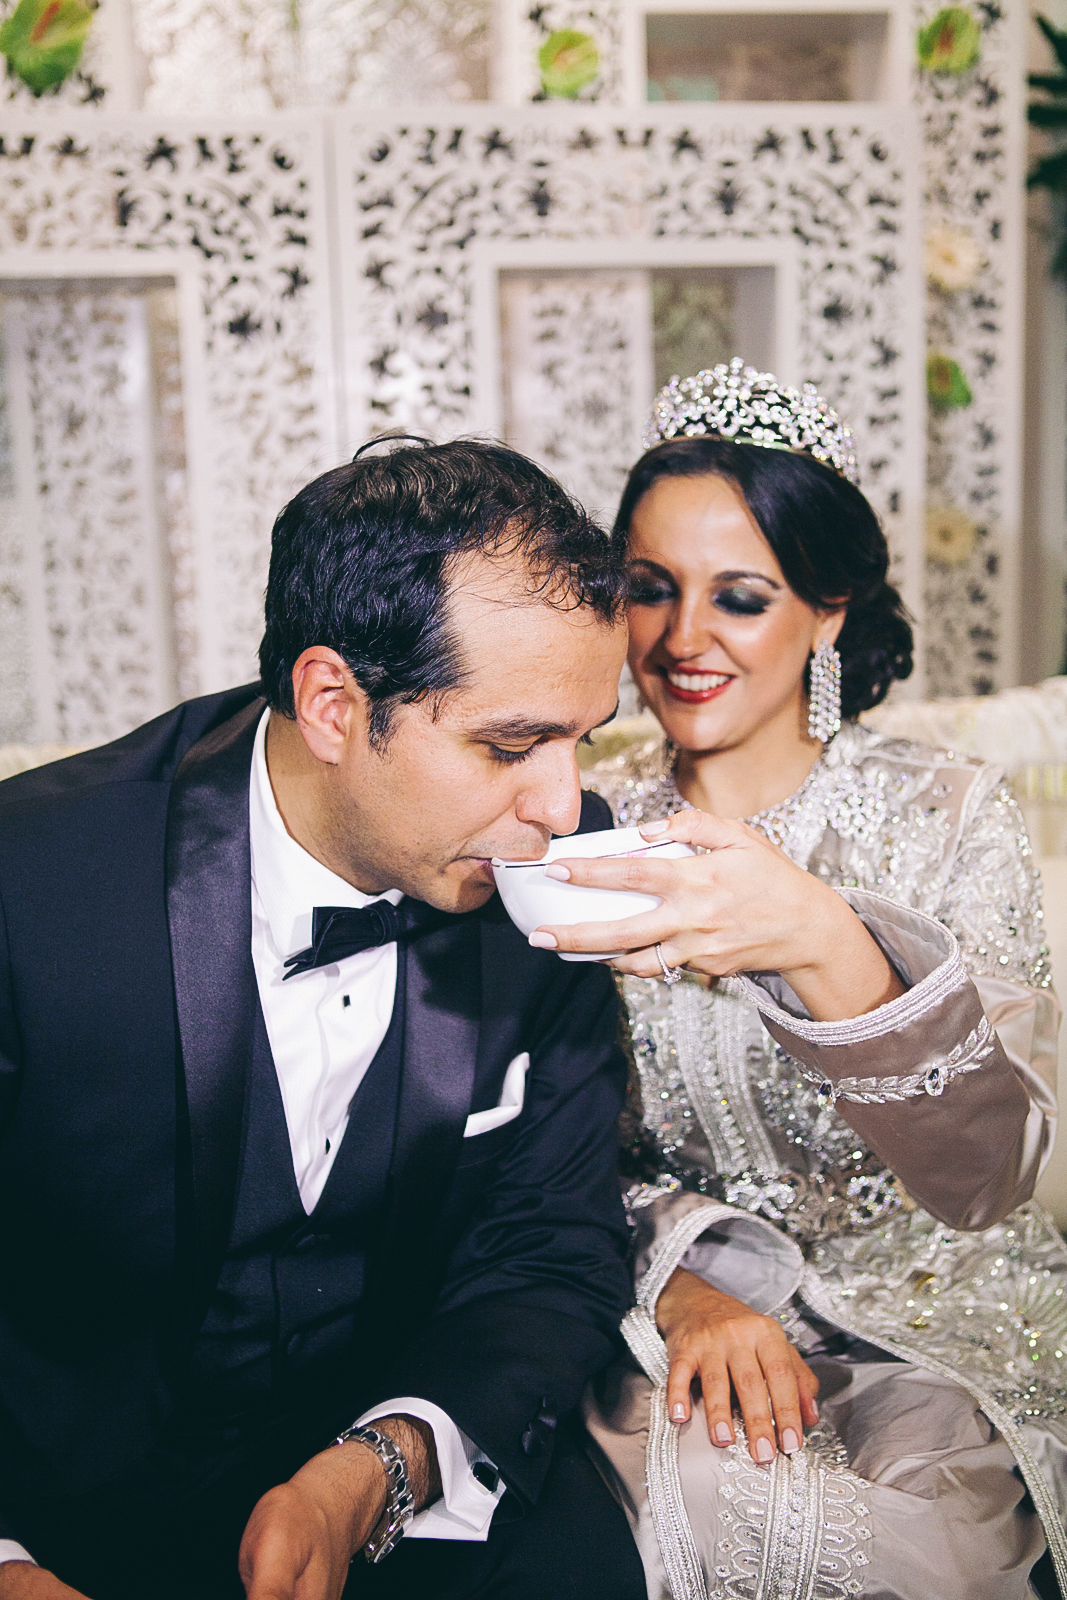 traditional_moroccan_wedding_photographry_casablanca_morocco_houda_vivek_ebony_siovhan_bokeh_photography_087.jpg